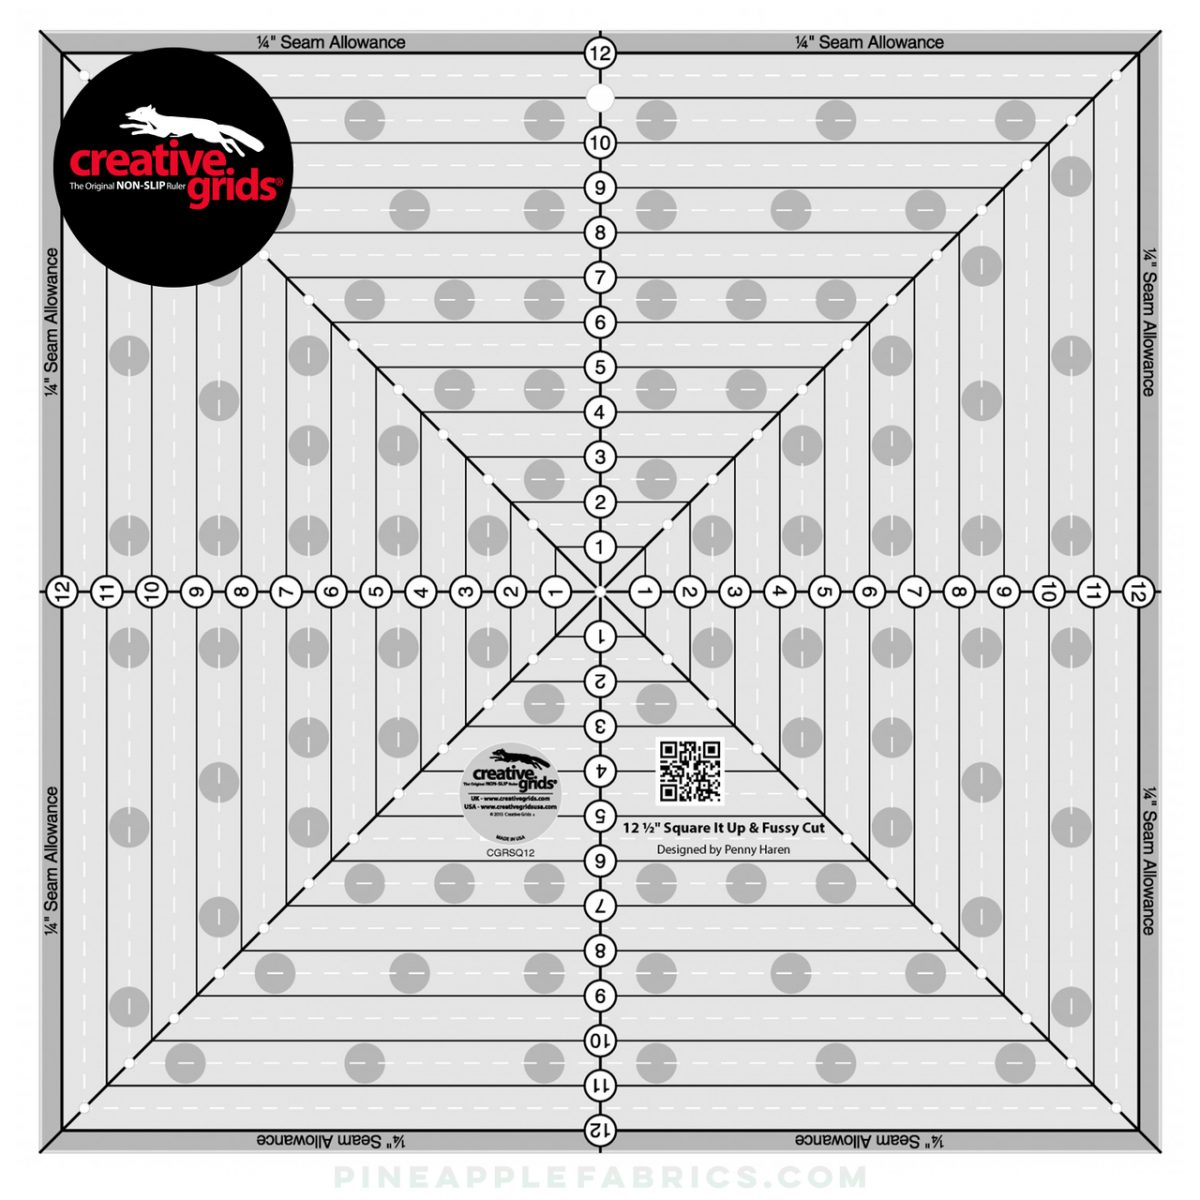 CGRSQ12 - Creative Grids 12-1/2in Square It Up or Fussy Cut Square